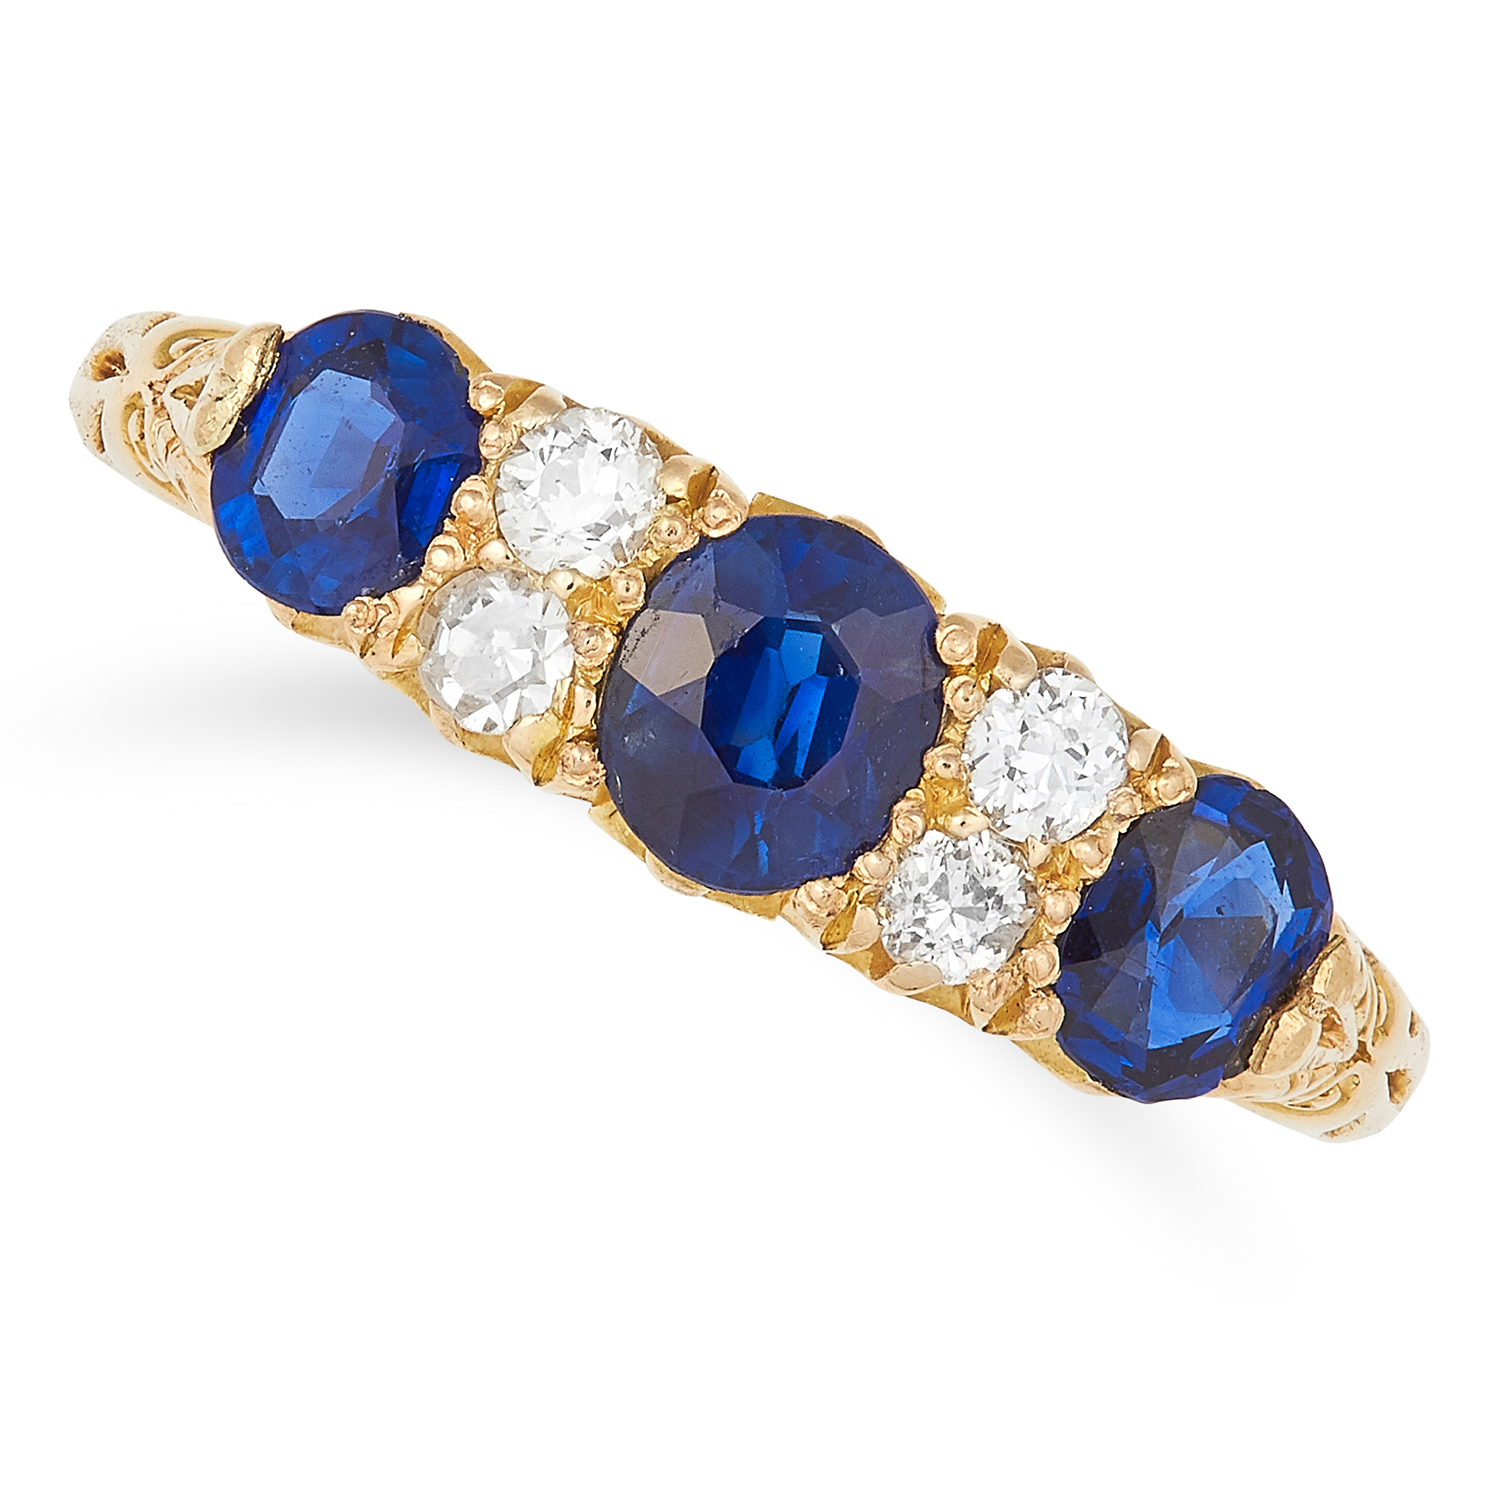 Los 2 - SAPPHIRE AND DIAMOND RING set with three oval cut sapphires totalling approximately 1.09 carats